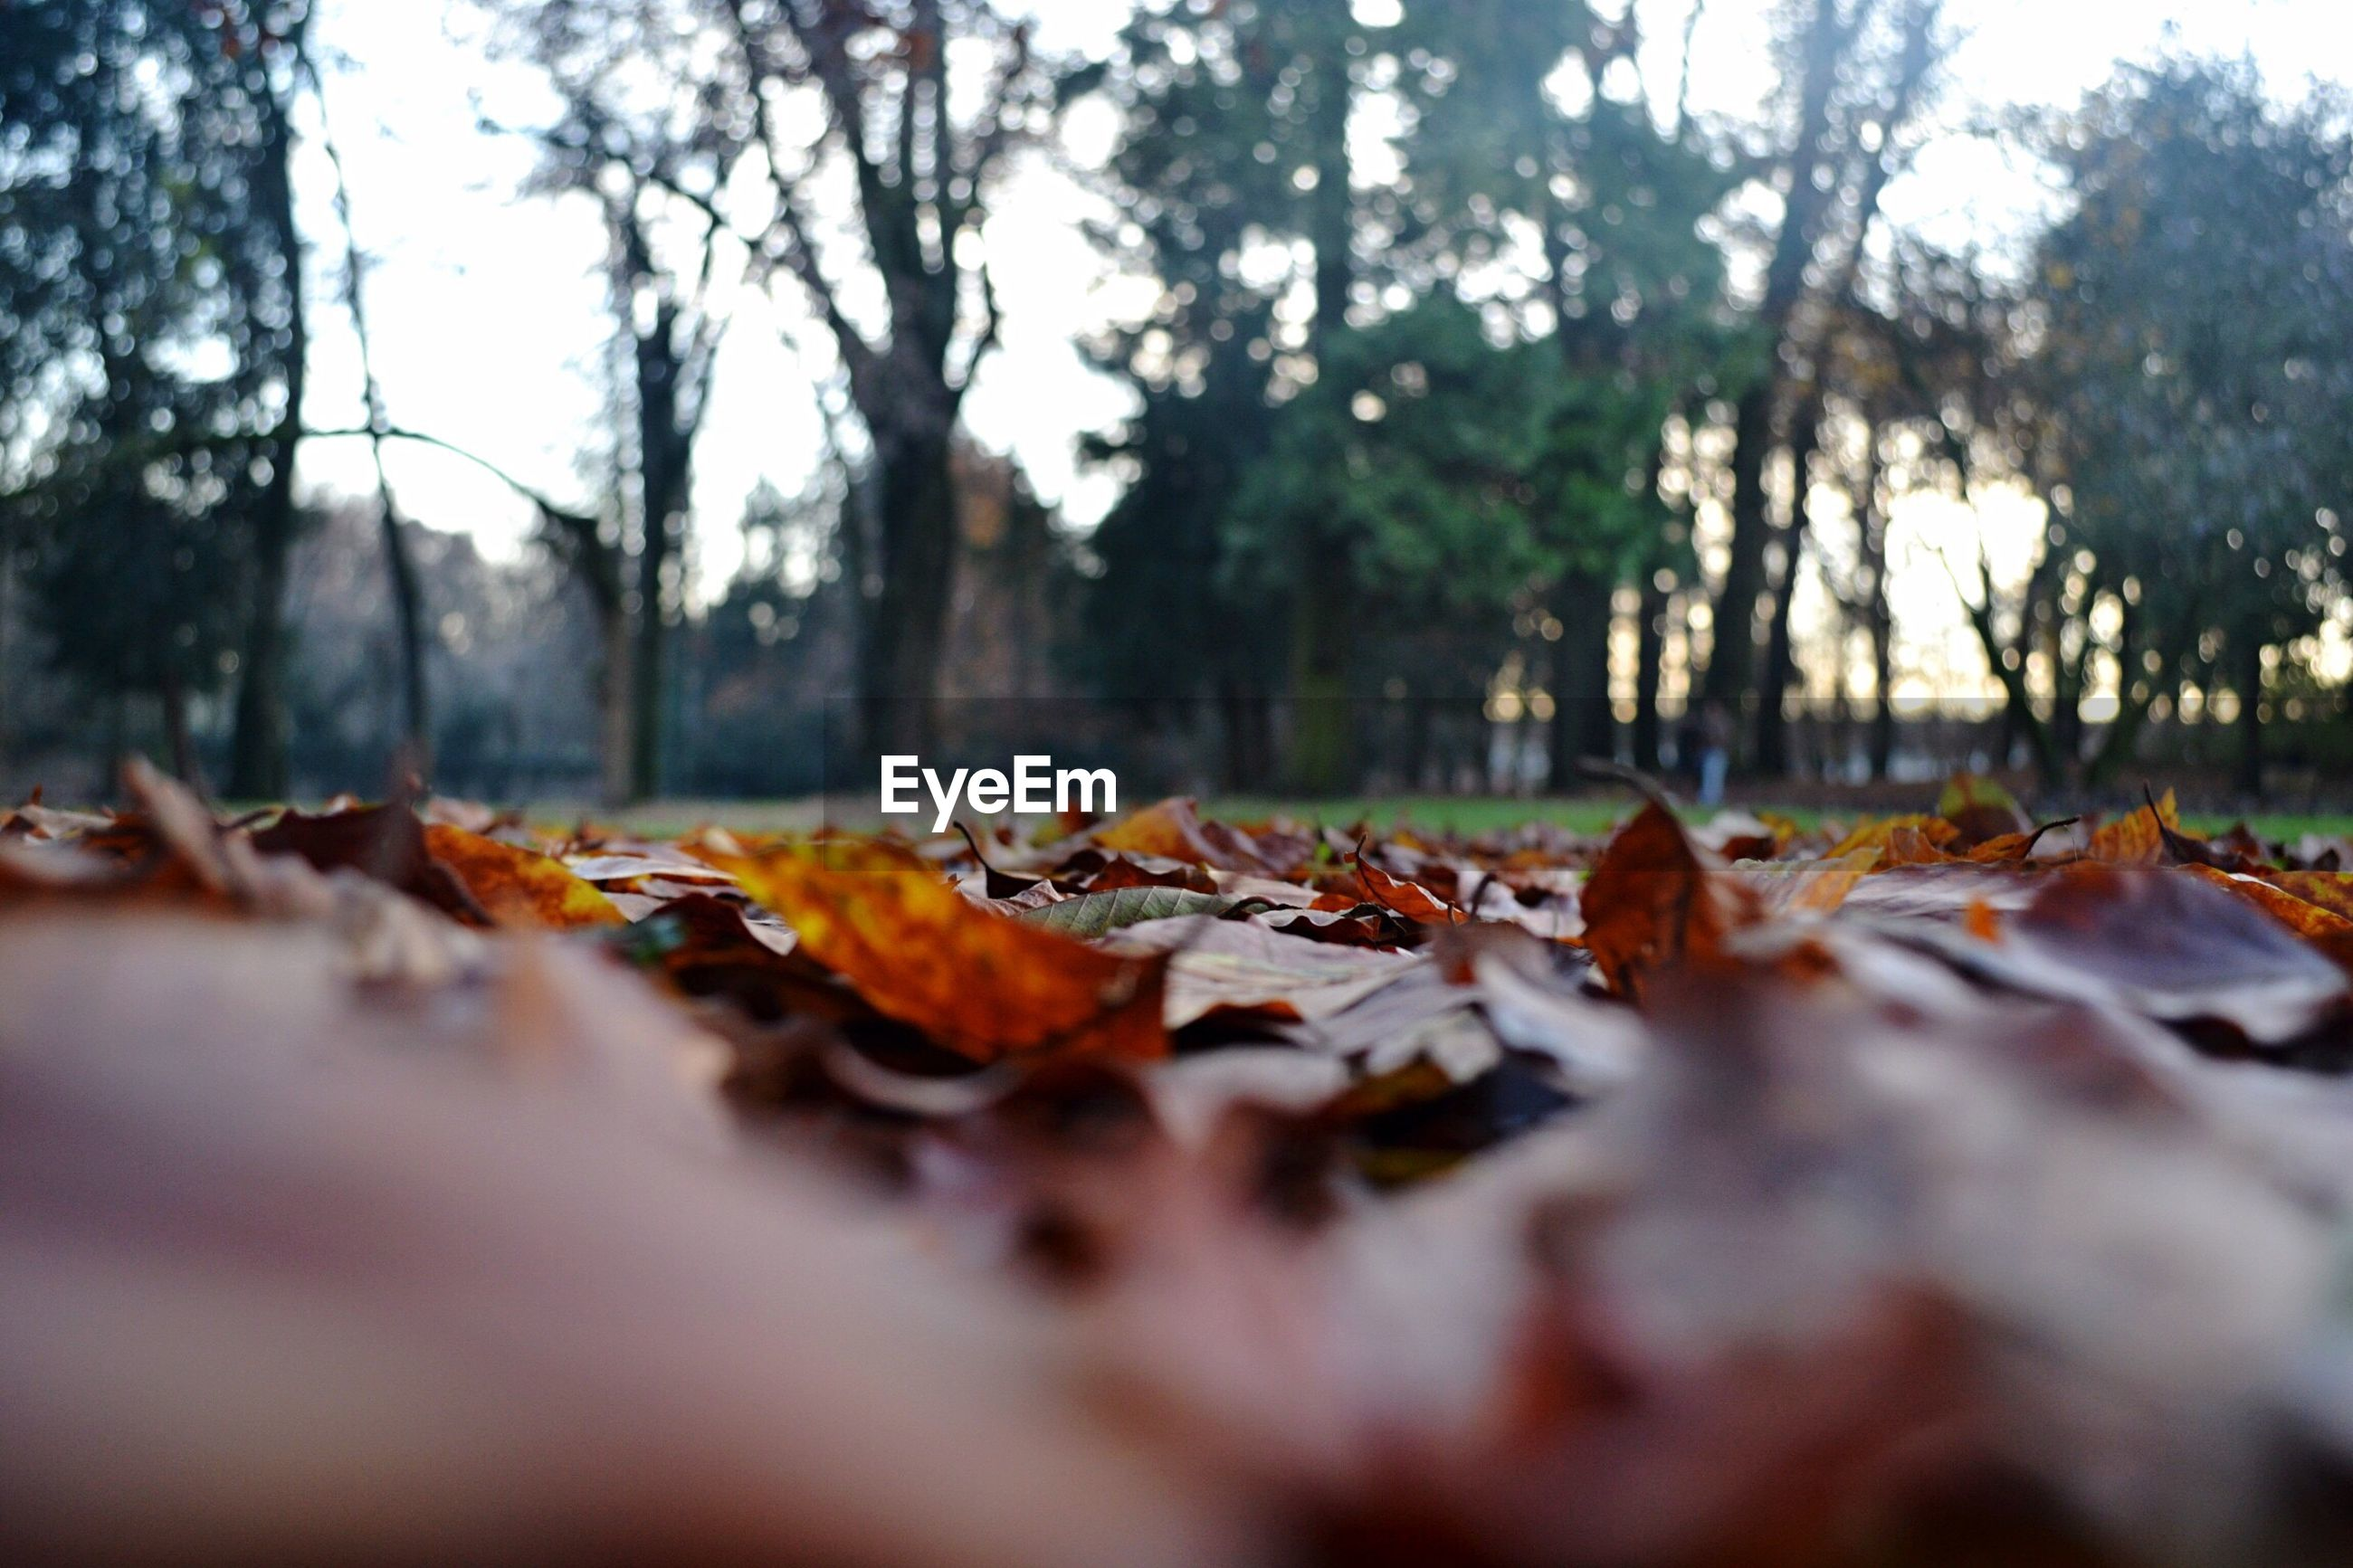 autumn, change, leaf, tree, dry, selective focus, nature, fallen, leaves, surface level, no people, close-up, outdoors, fallen leaf, beauty in nature, maple, day, maple leaf, fall